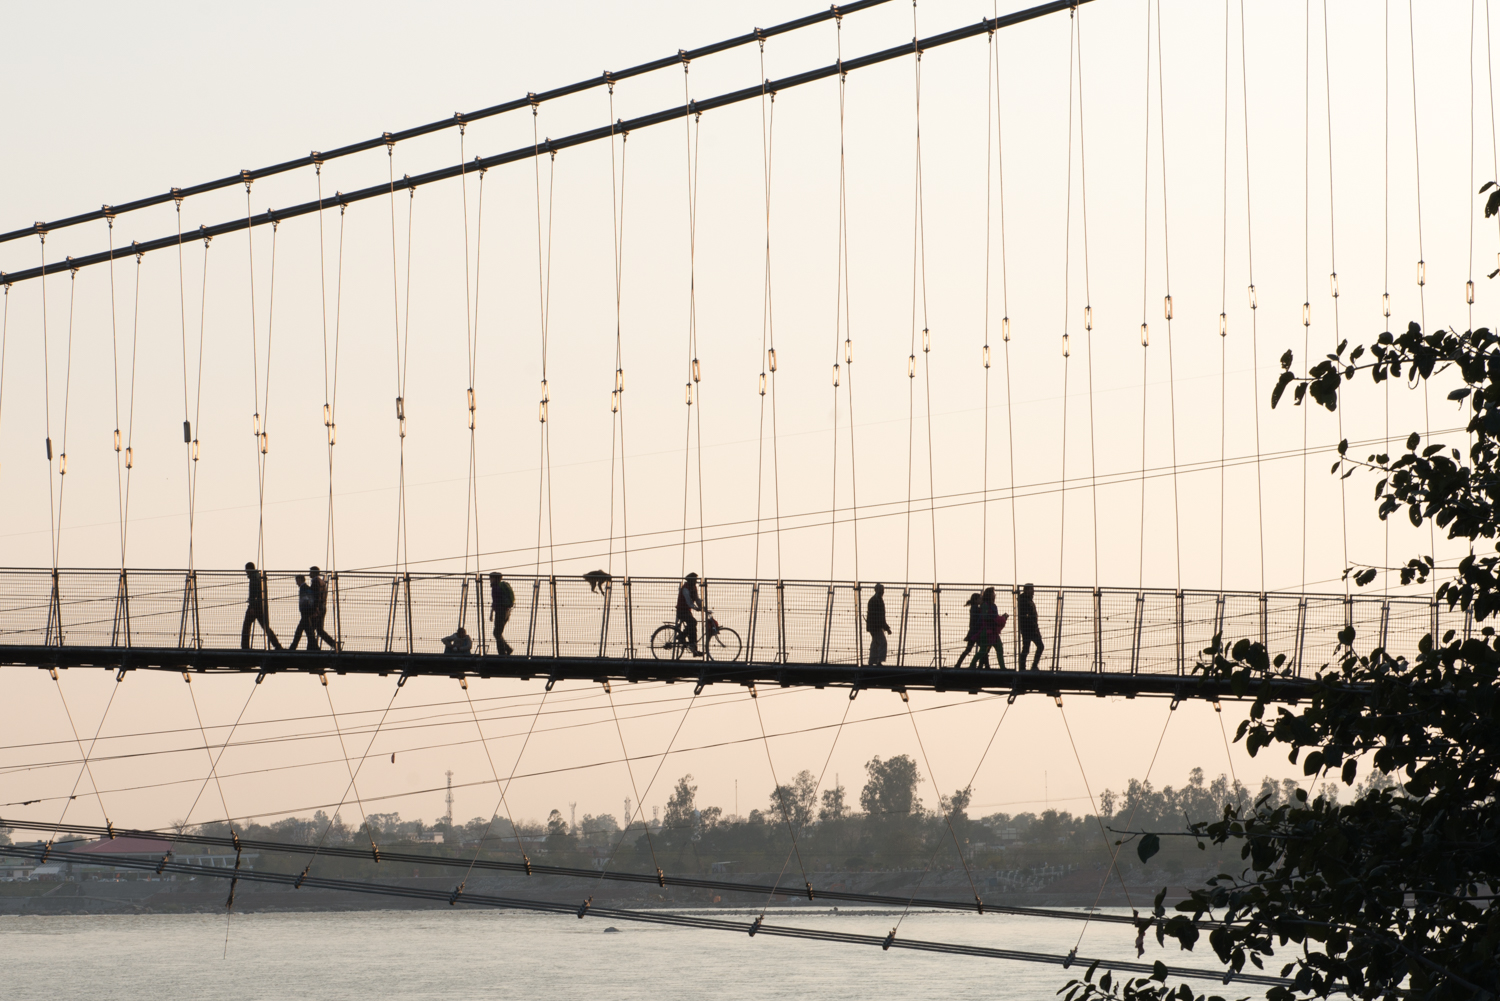 The pedestrian traffic on this bridge was ridiculous!Monkeys, bicycles,people, and motorbikes whiz across bridge at all hours of the day - Rishikesh, India.